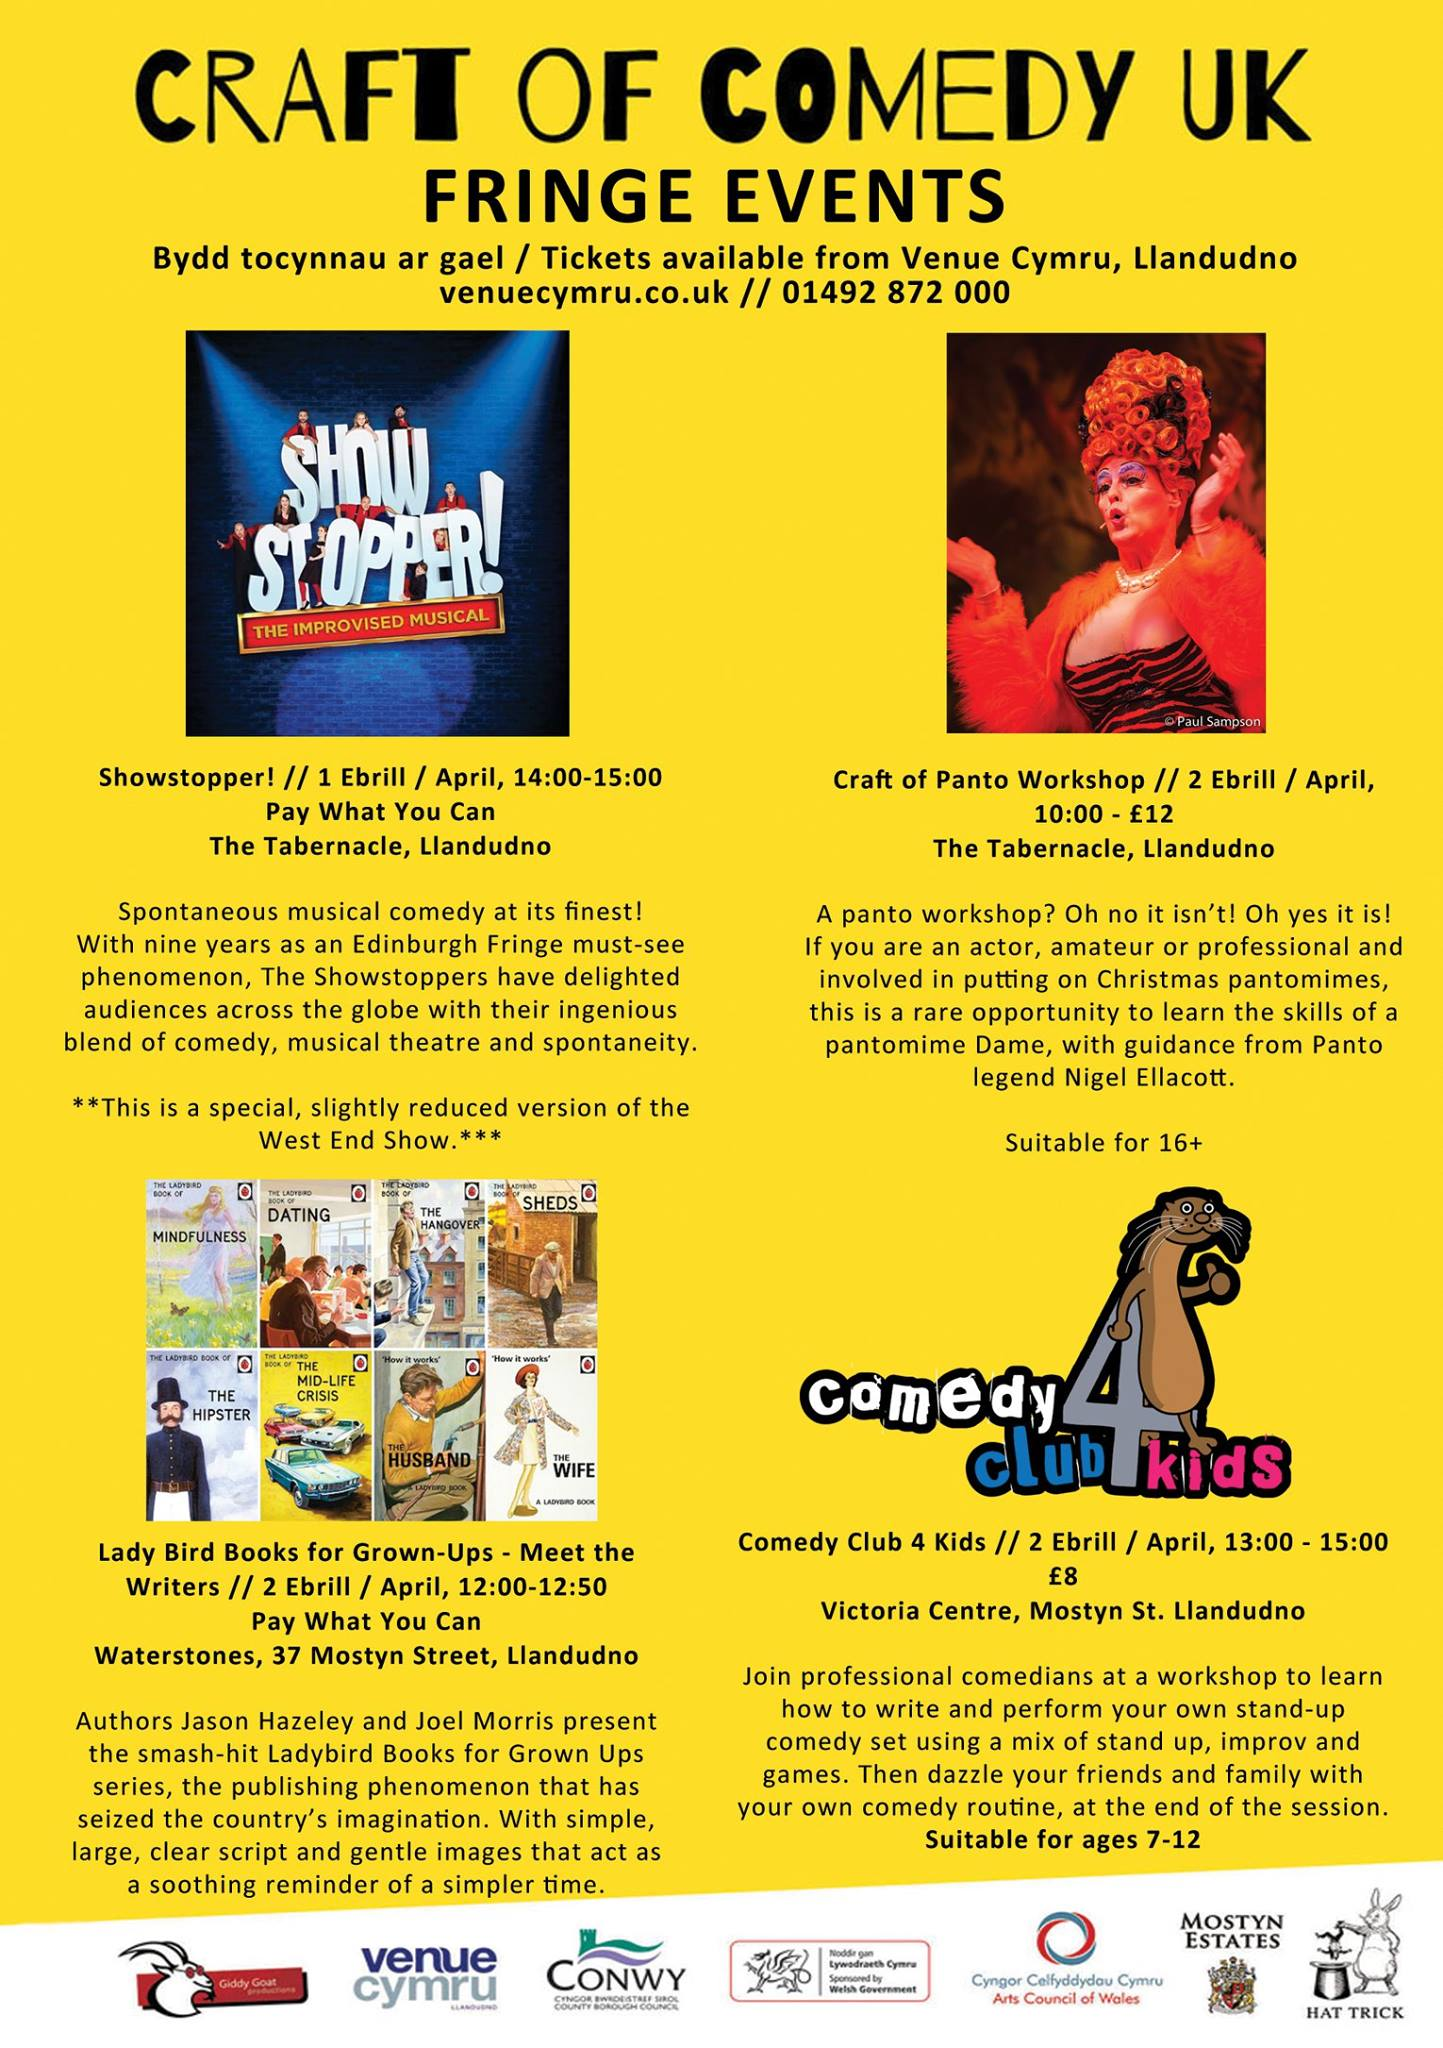 Whats On This Weekend Friday 31st Sunday 2nd Tvconwy